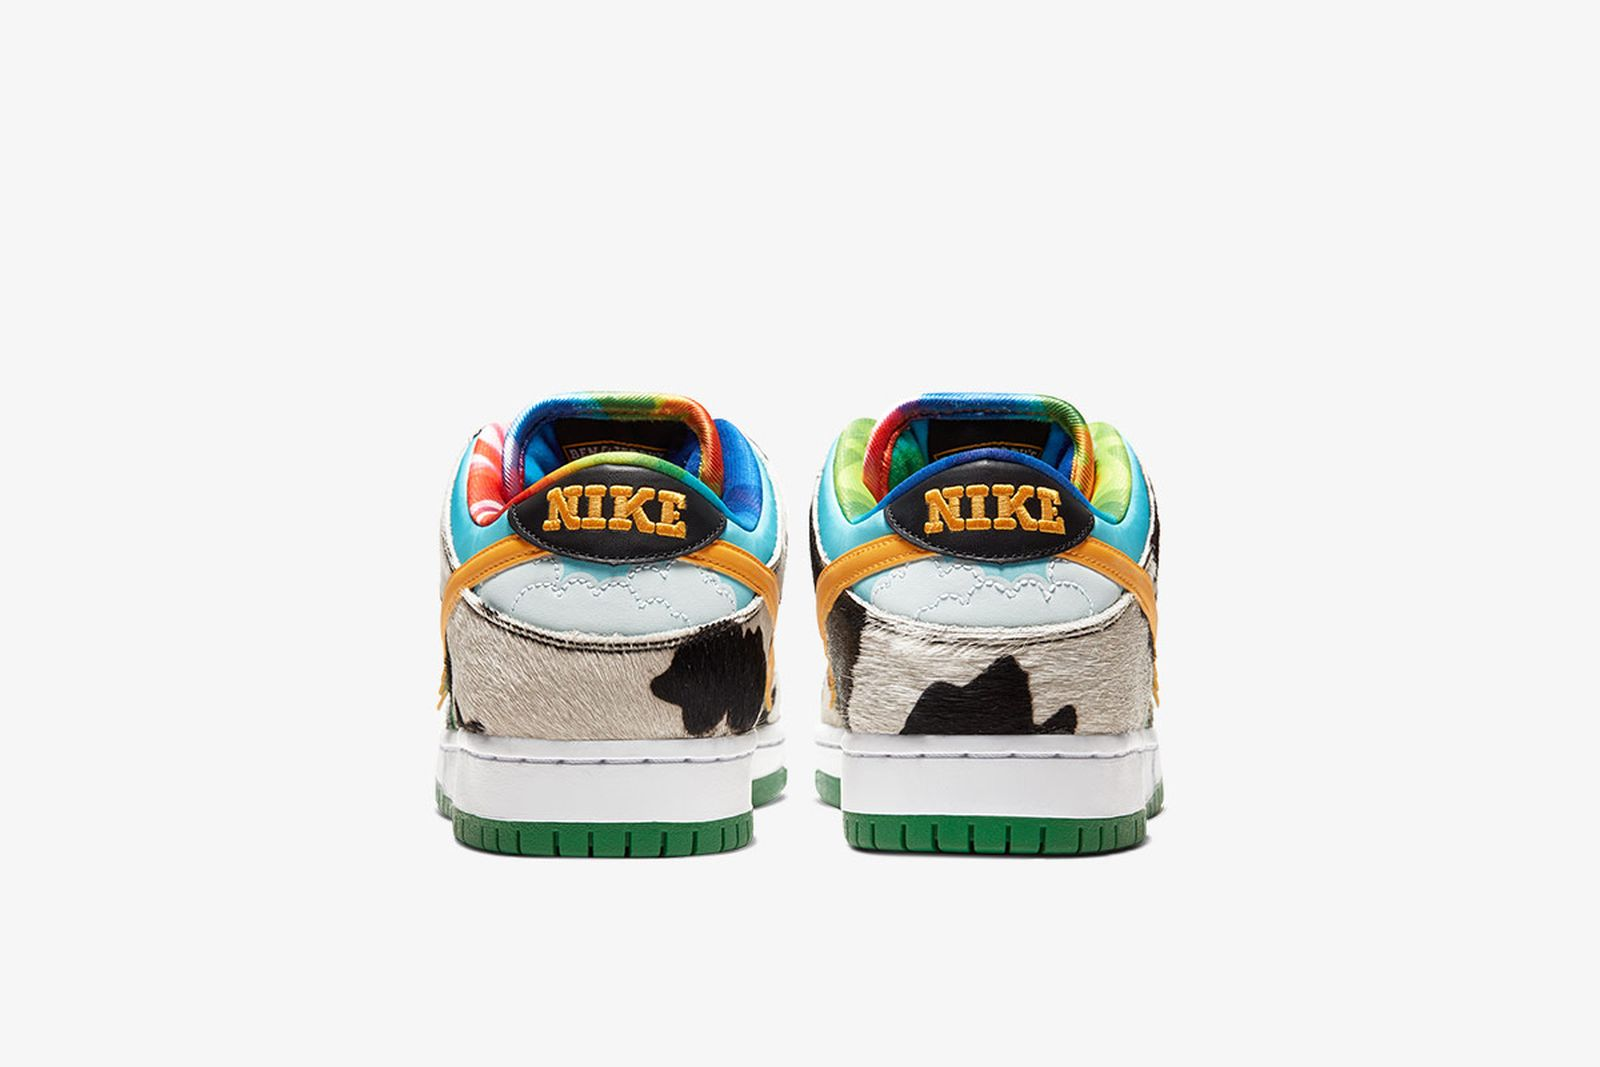 nike-sb-dunk-chunky-dunky-release-date-price-product-02